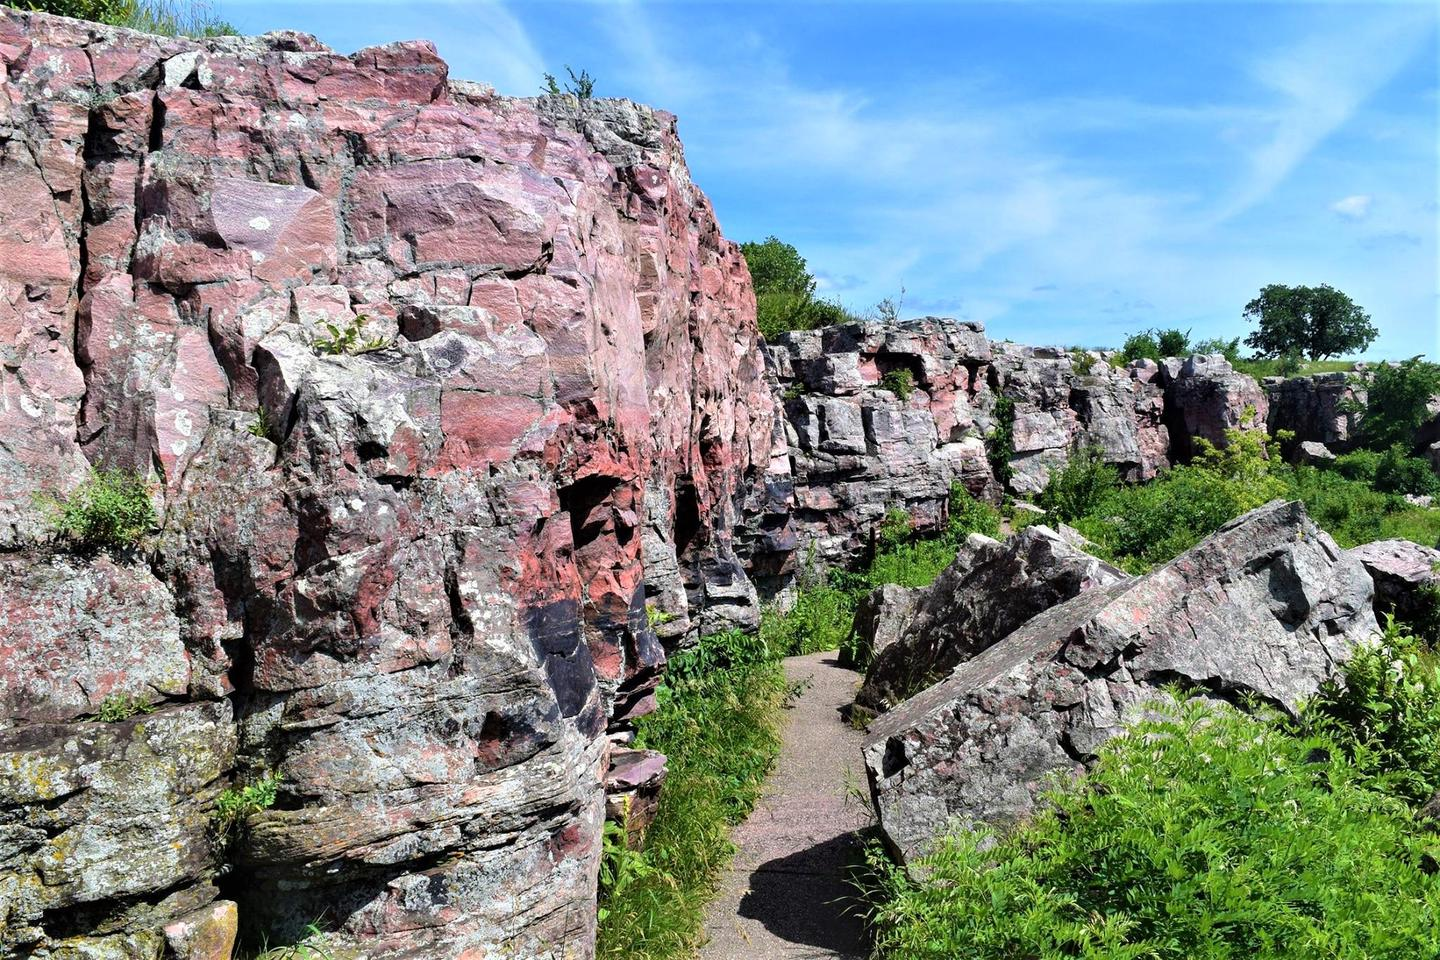 Sioux Quartzite CliffsThe outcroppings along the trail are a surprise to many visitors expecting a flat prairie